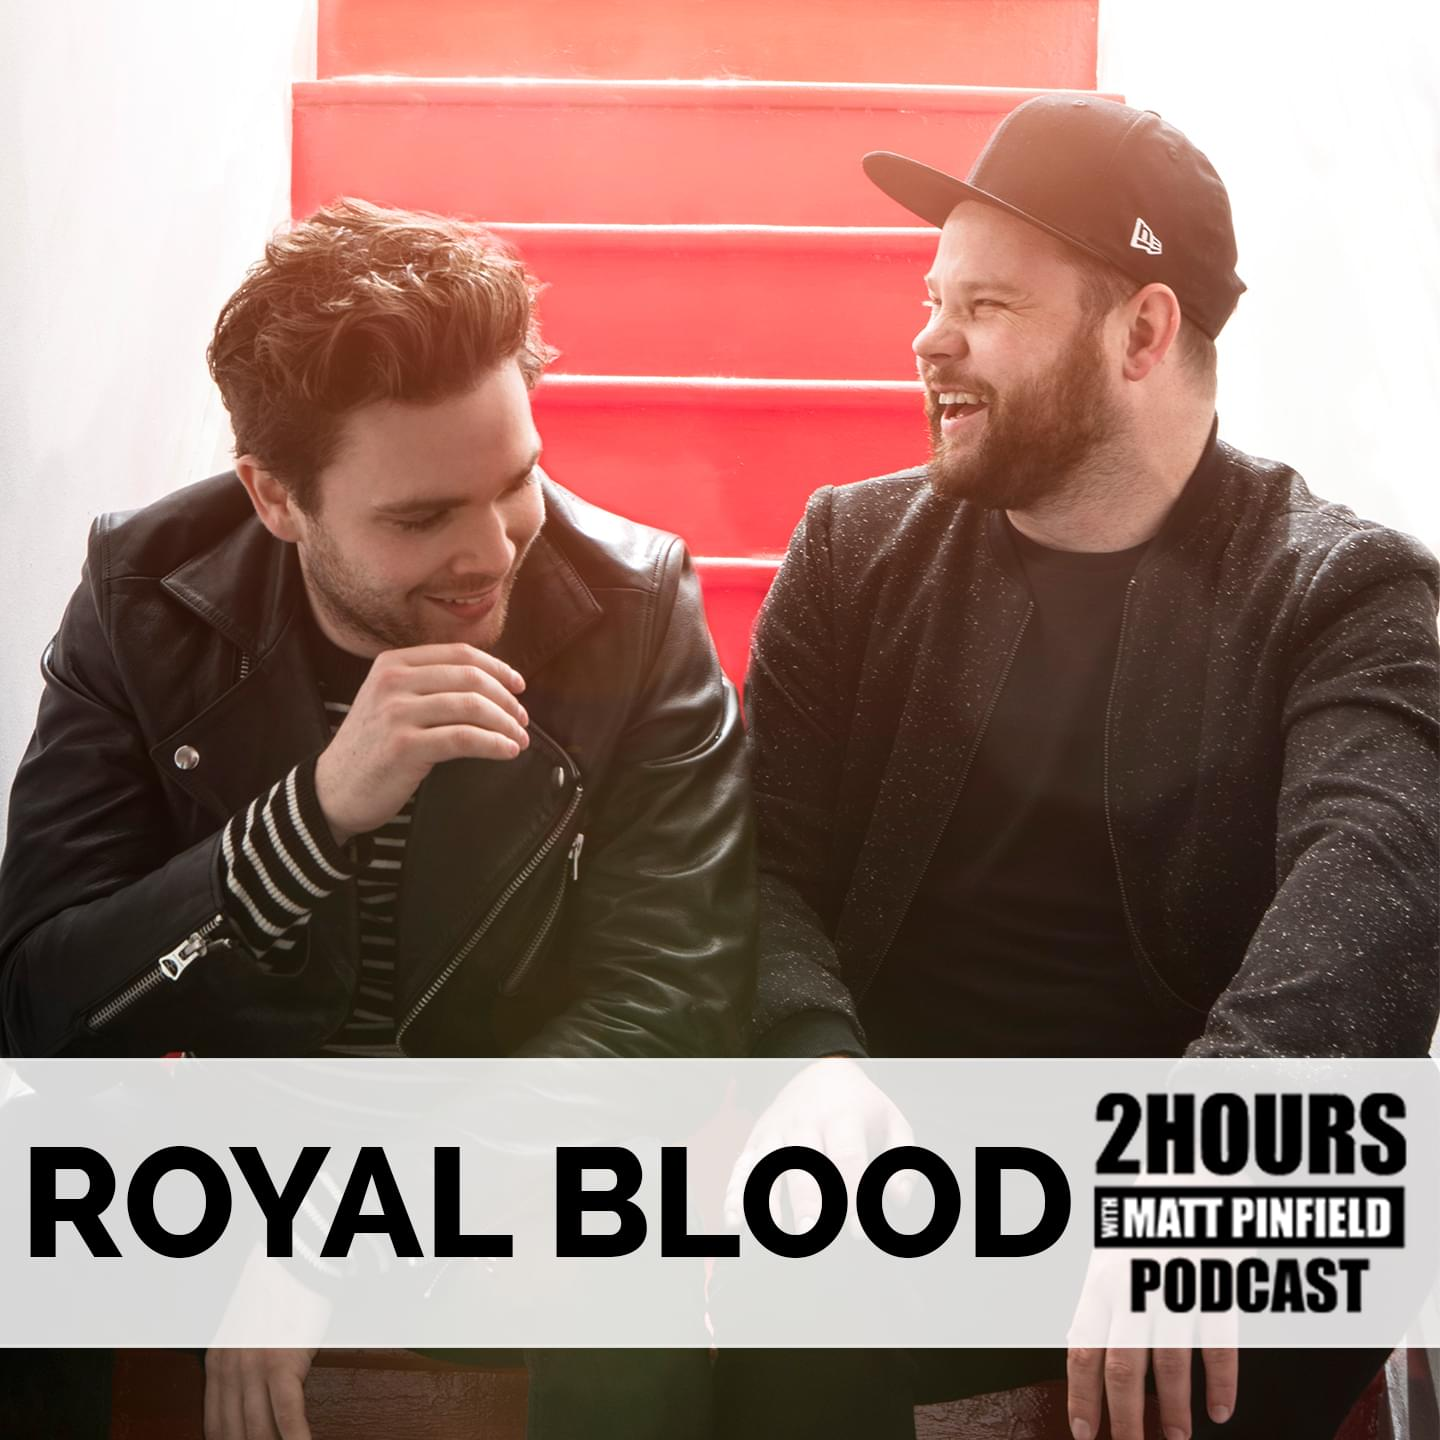 Podcast: Royal Blood